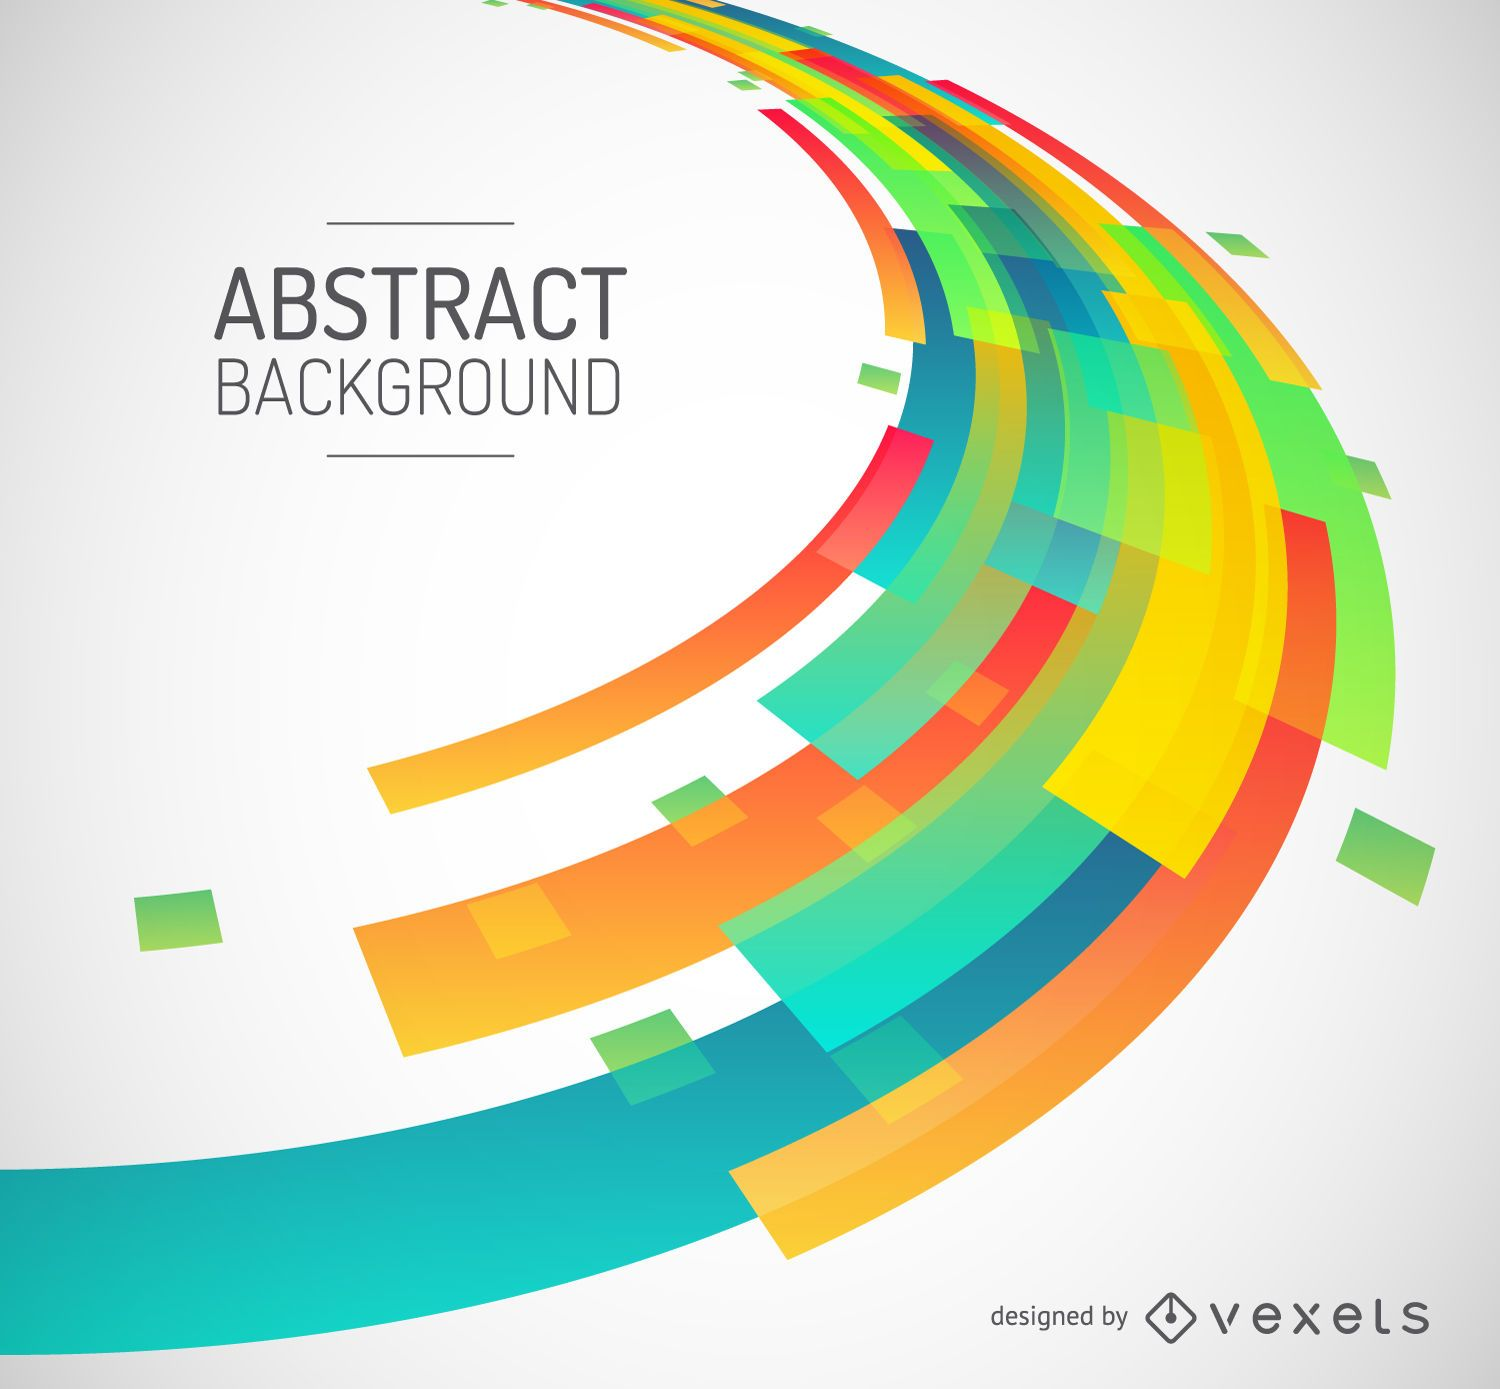 Abstract Colorful Geometric Shapes Background - Vector ...